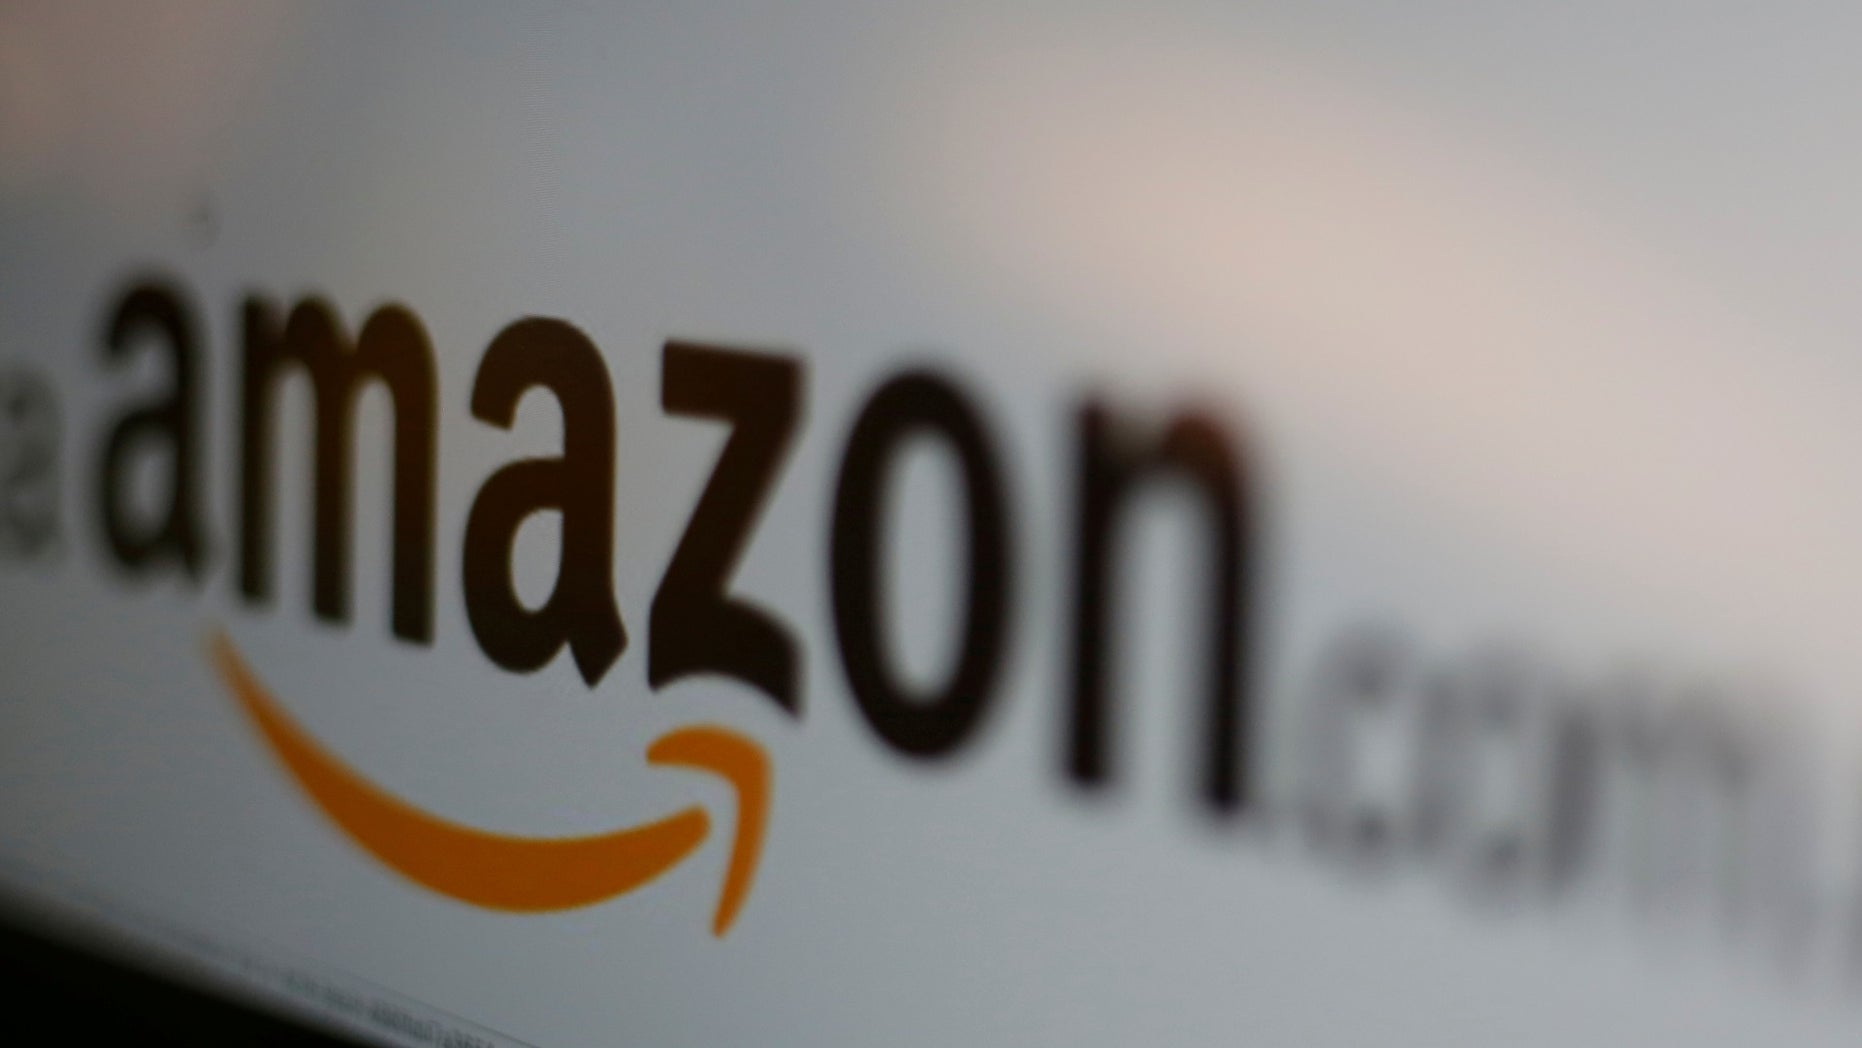 FILE PICTURE - The logo of the web service Amazon is pictured in this June 8, 2017 illustration photo. (REUTERS/Carlos Jasso)